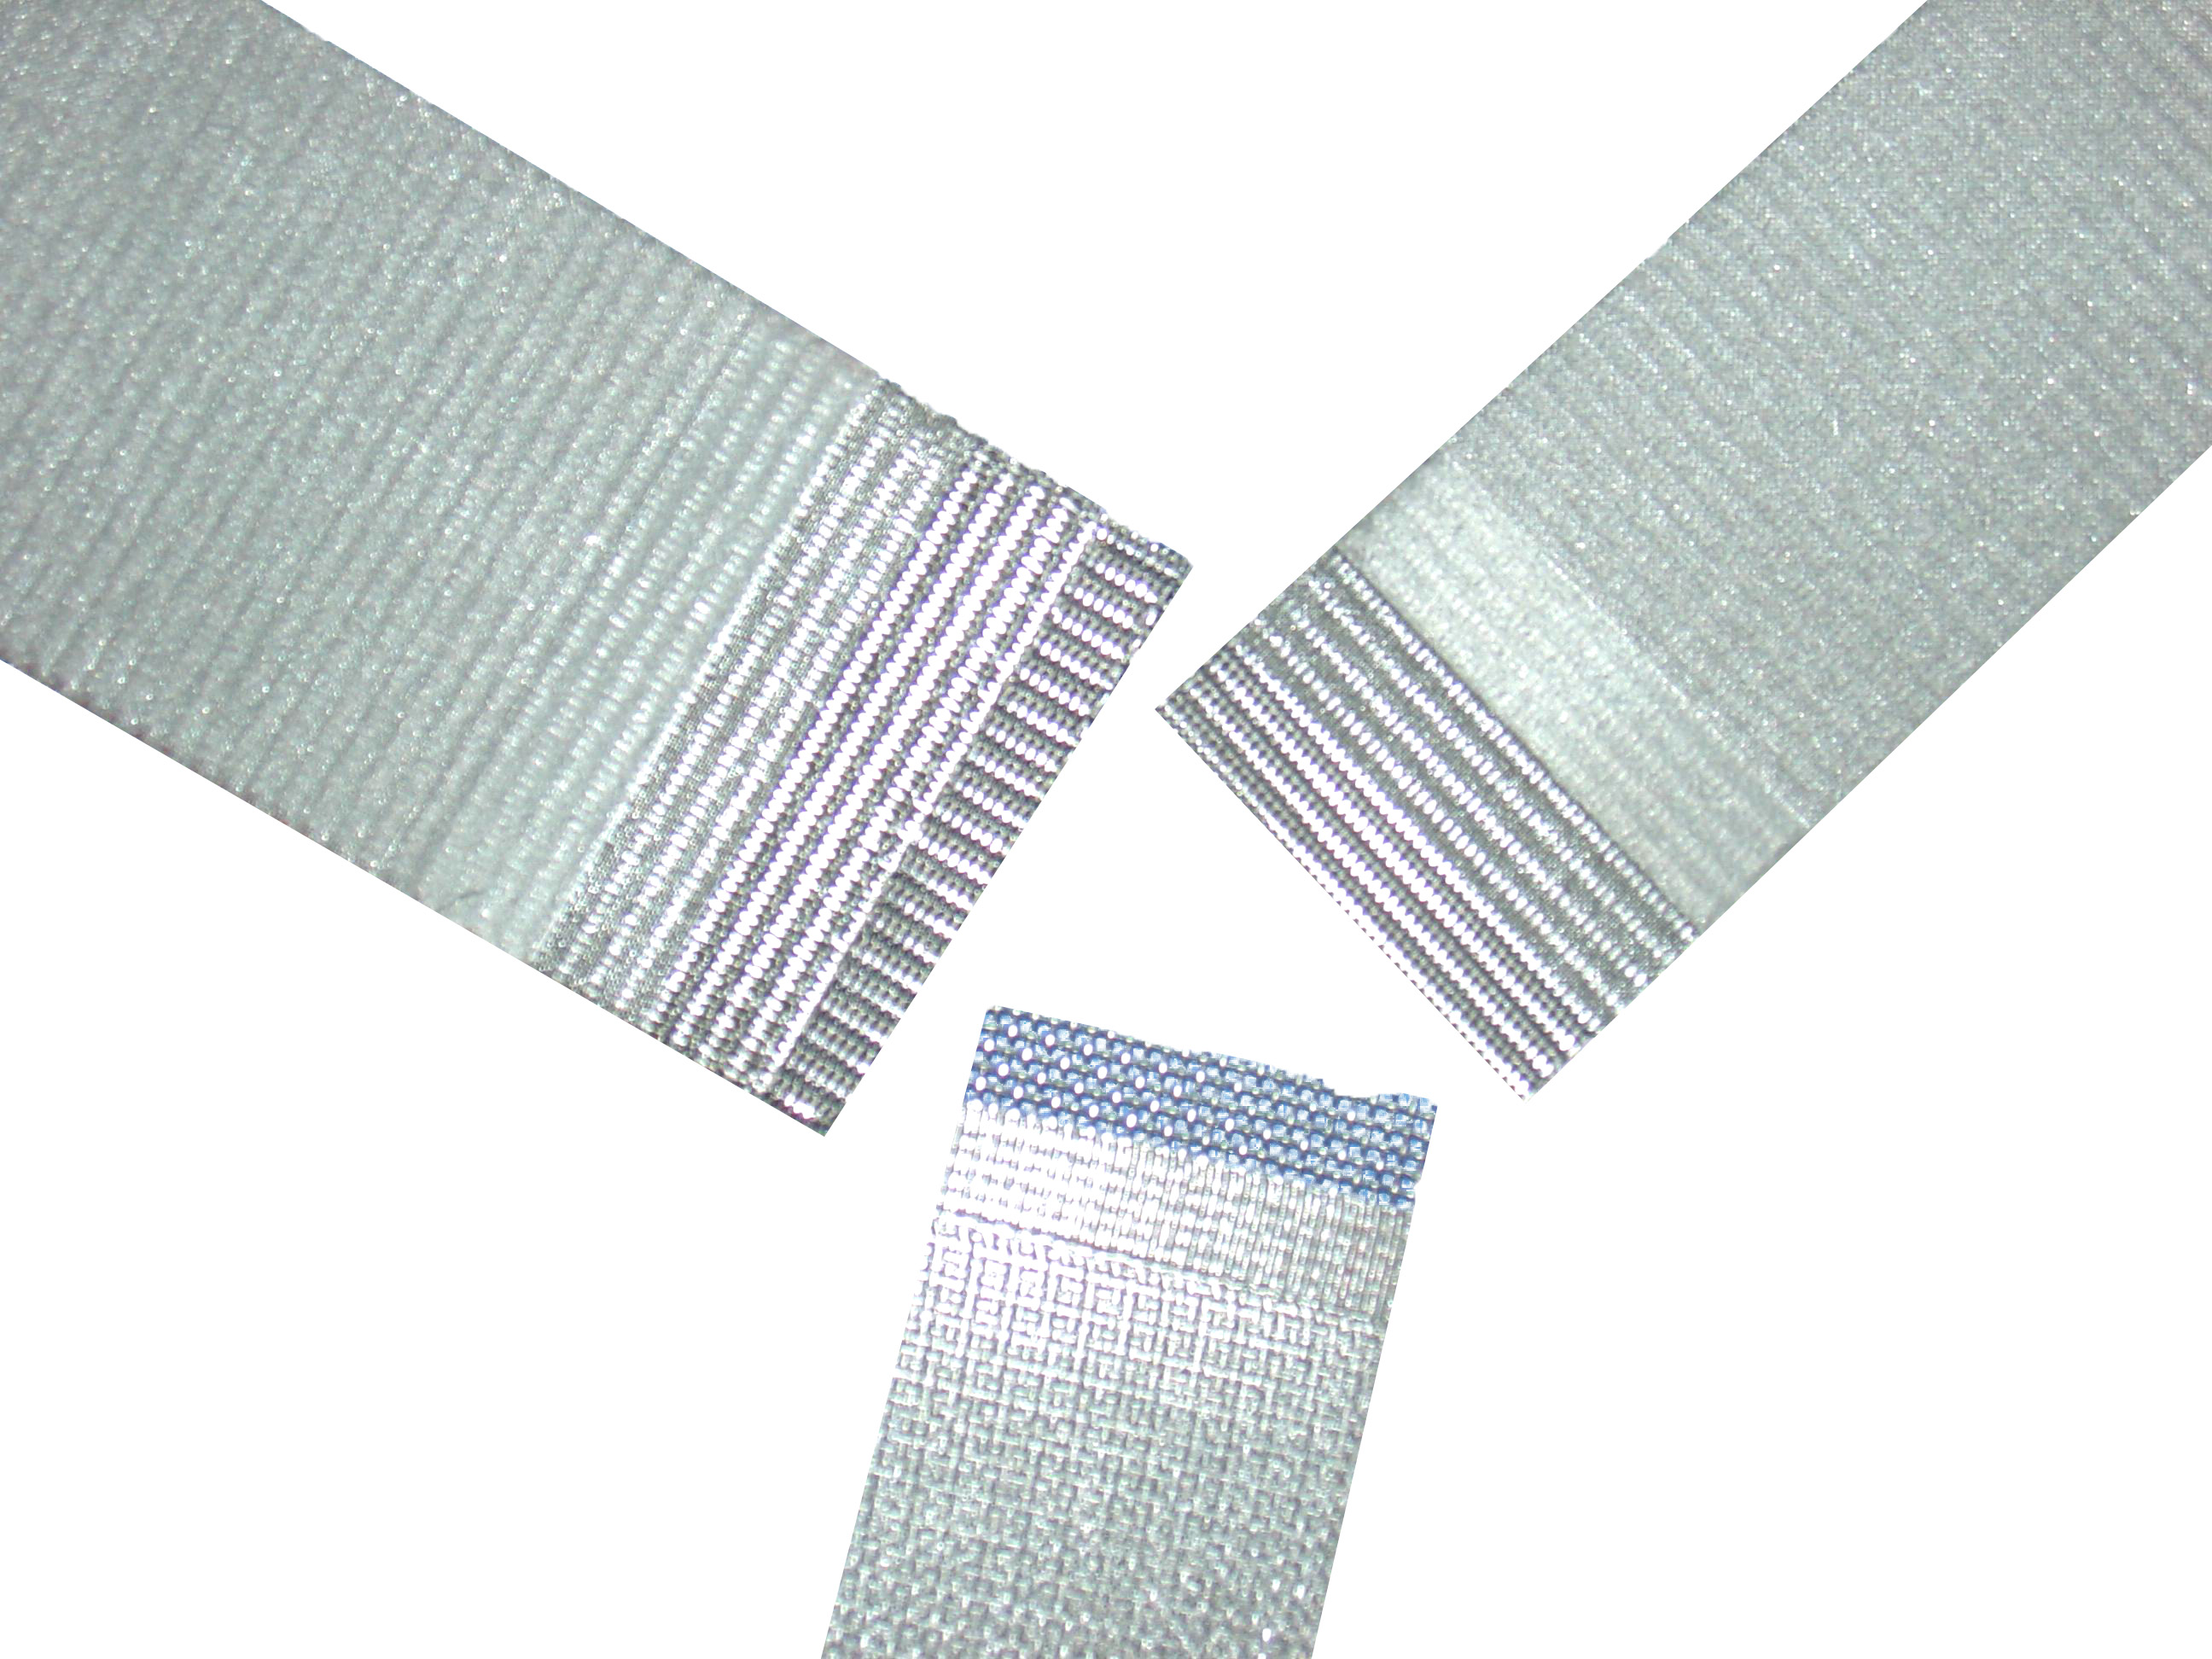 Three-layer Sintered Laminates